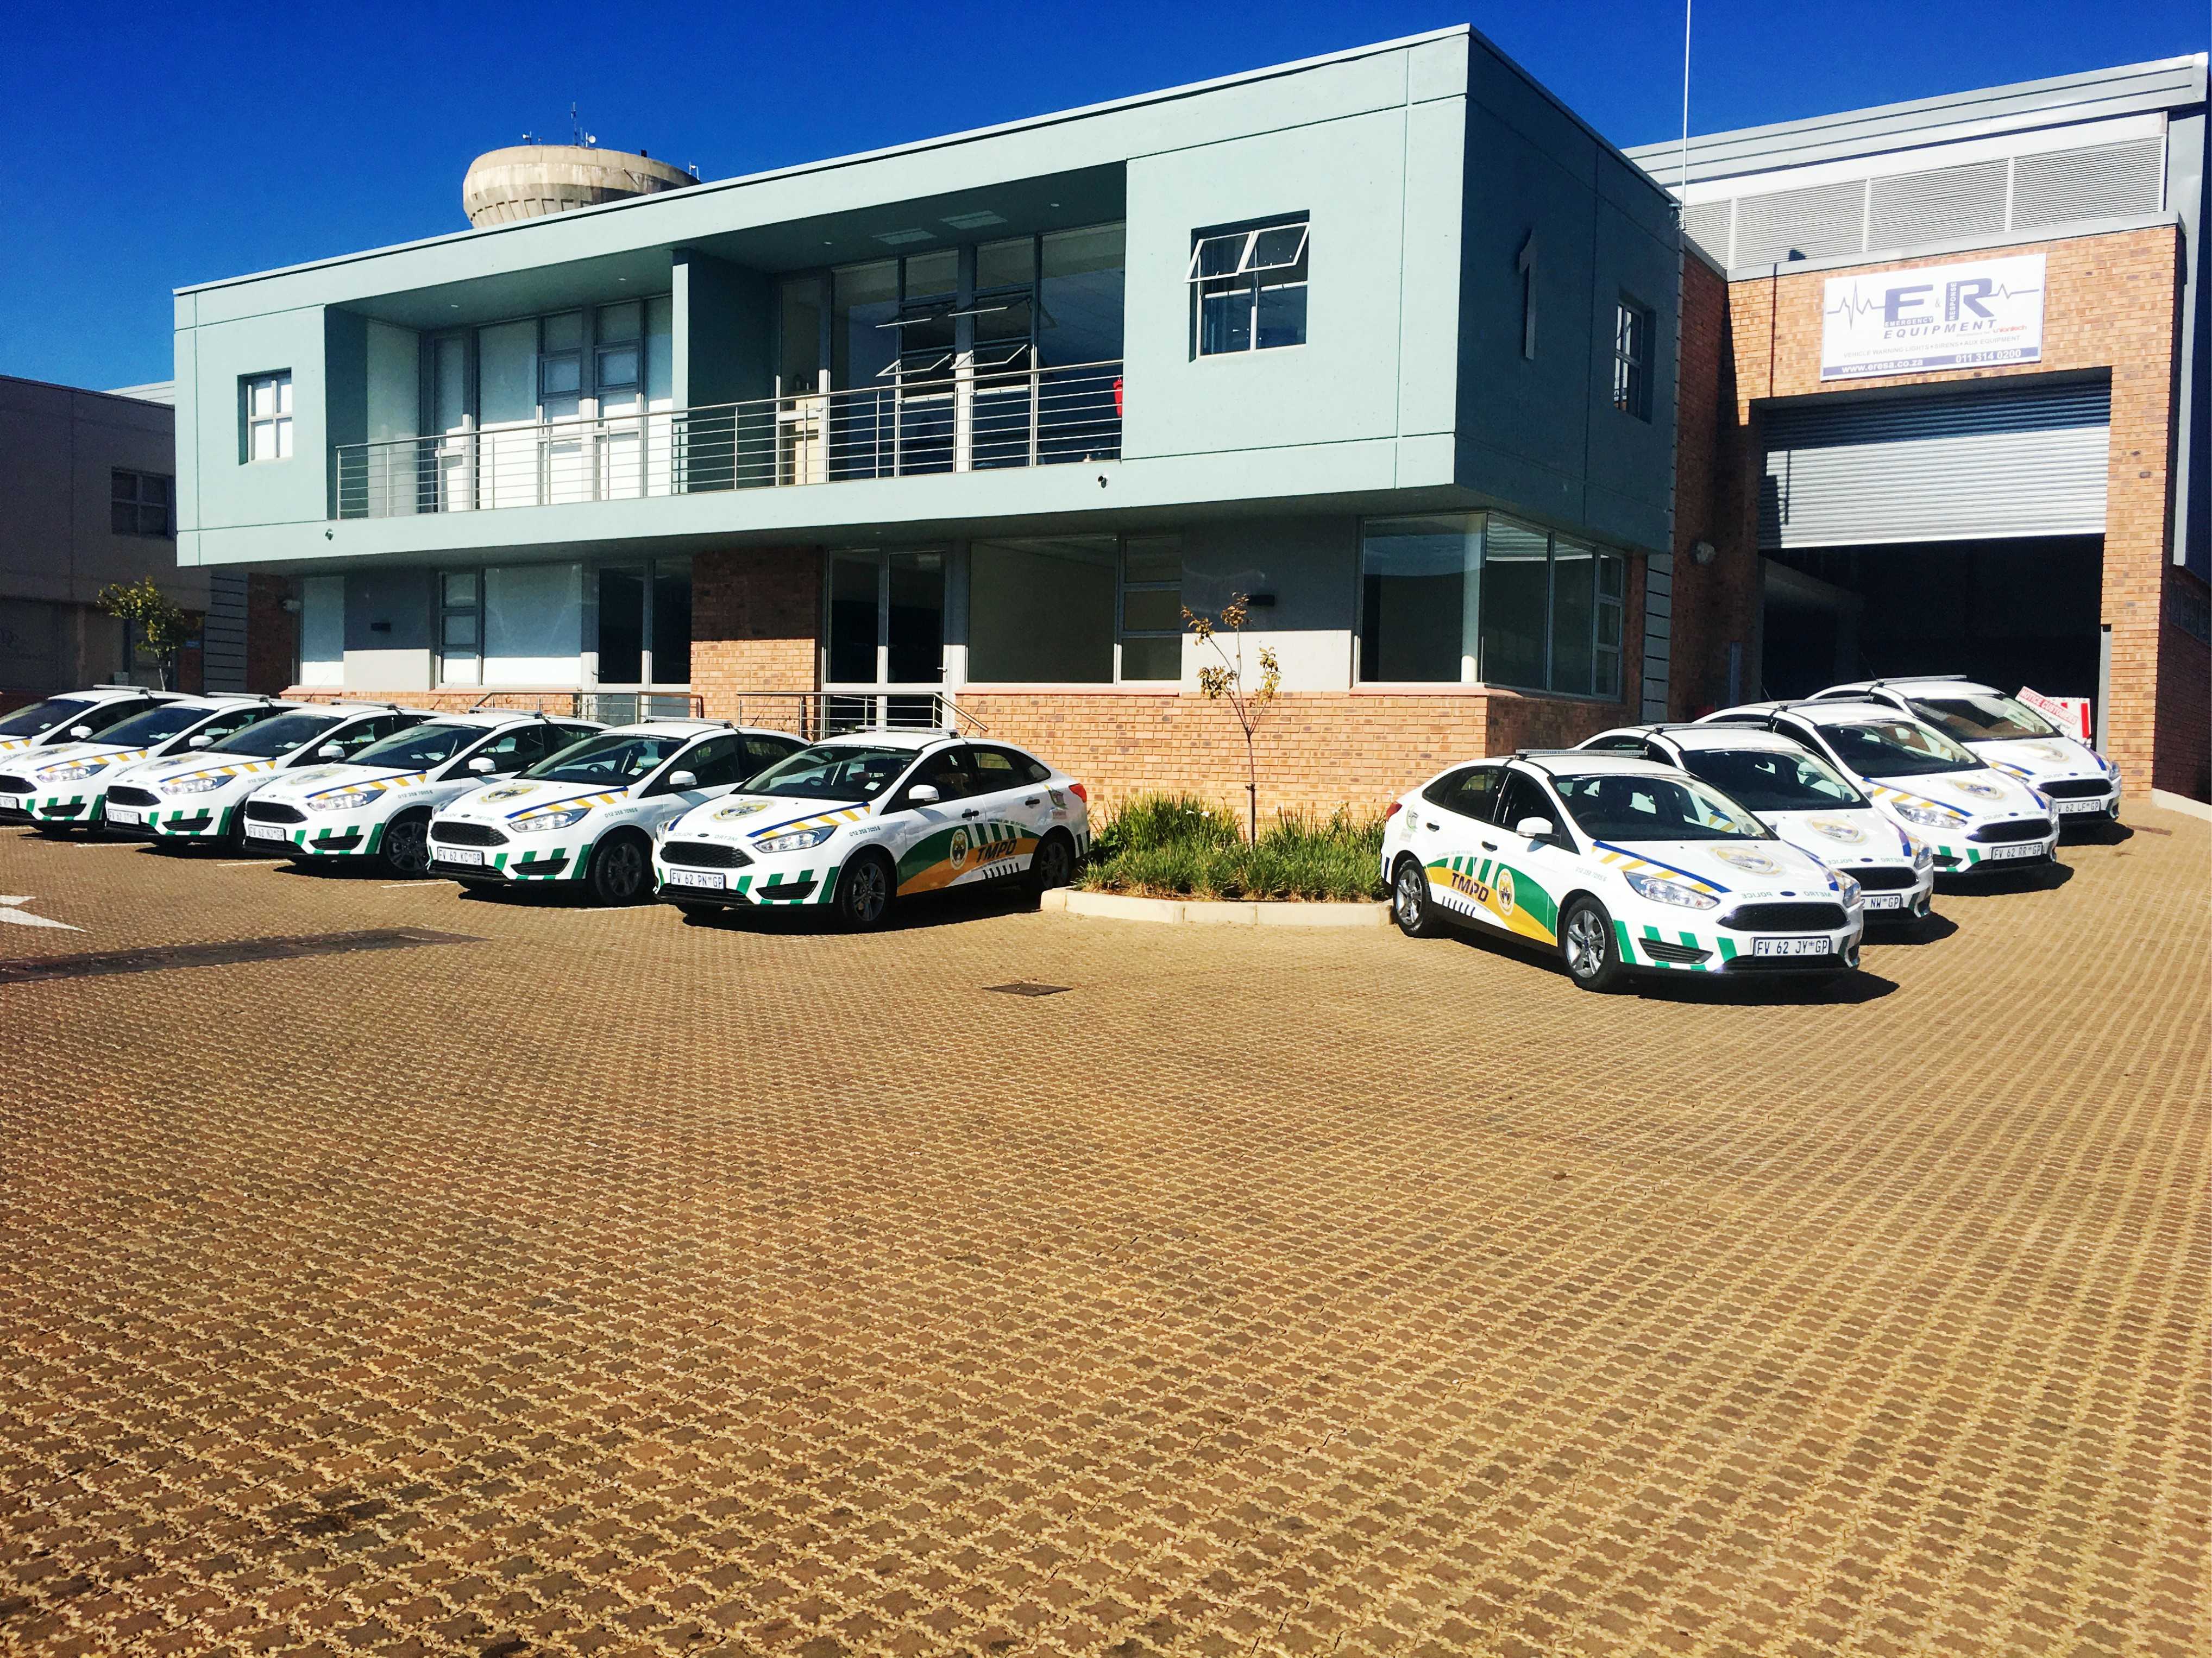 Tshwane Metro Police Department